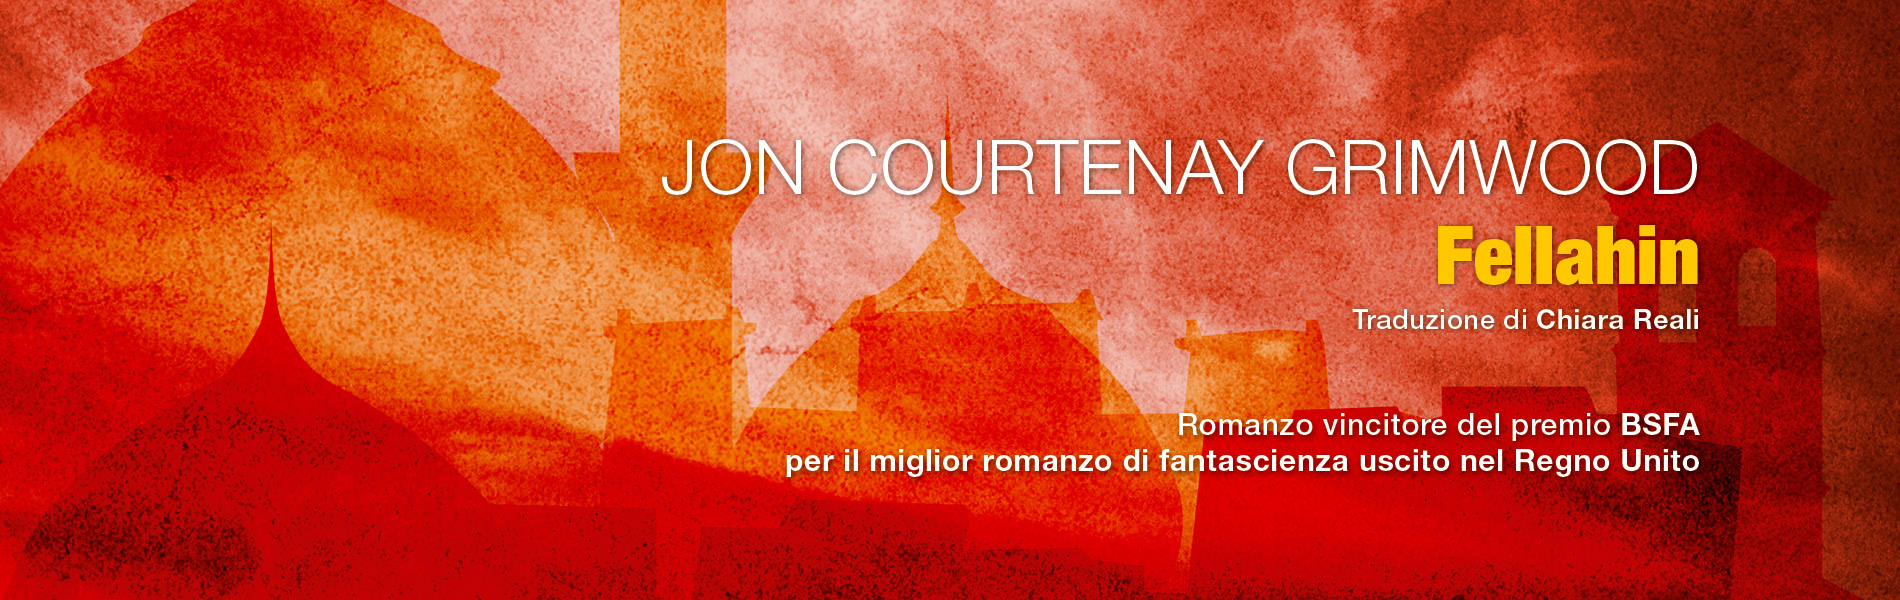 Fellahin, di Jon Courtenay Grimwood